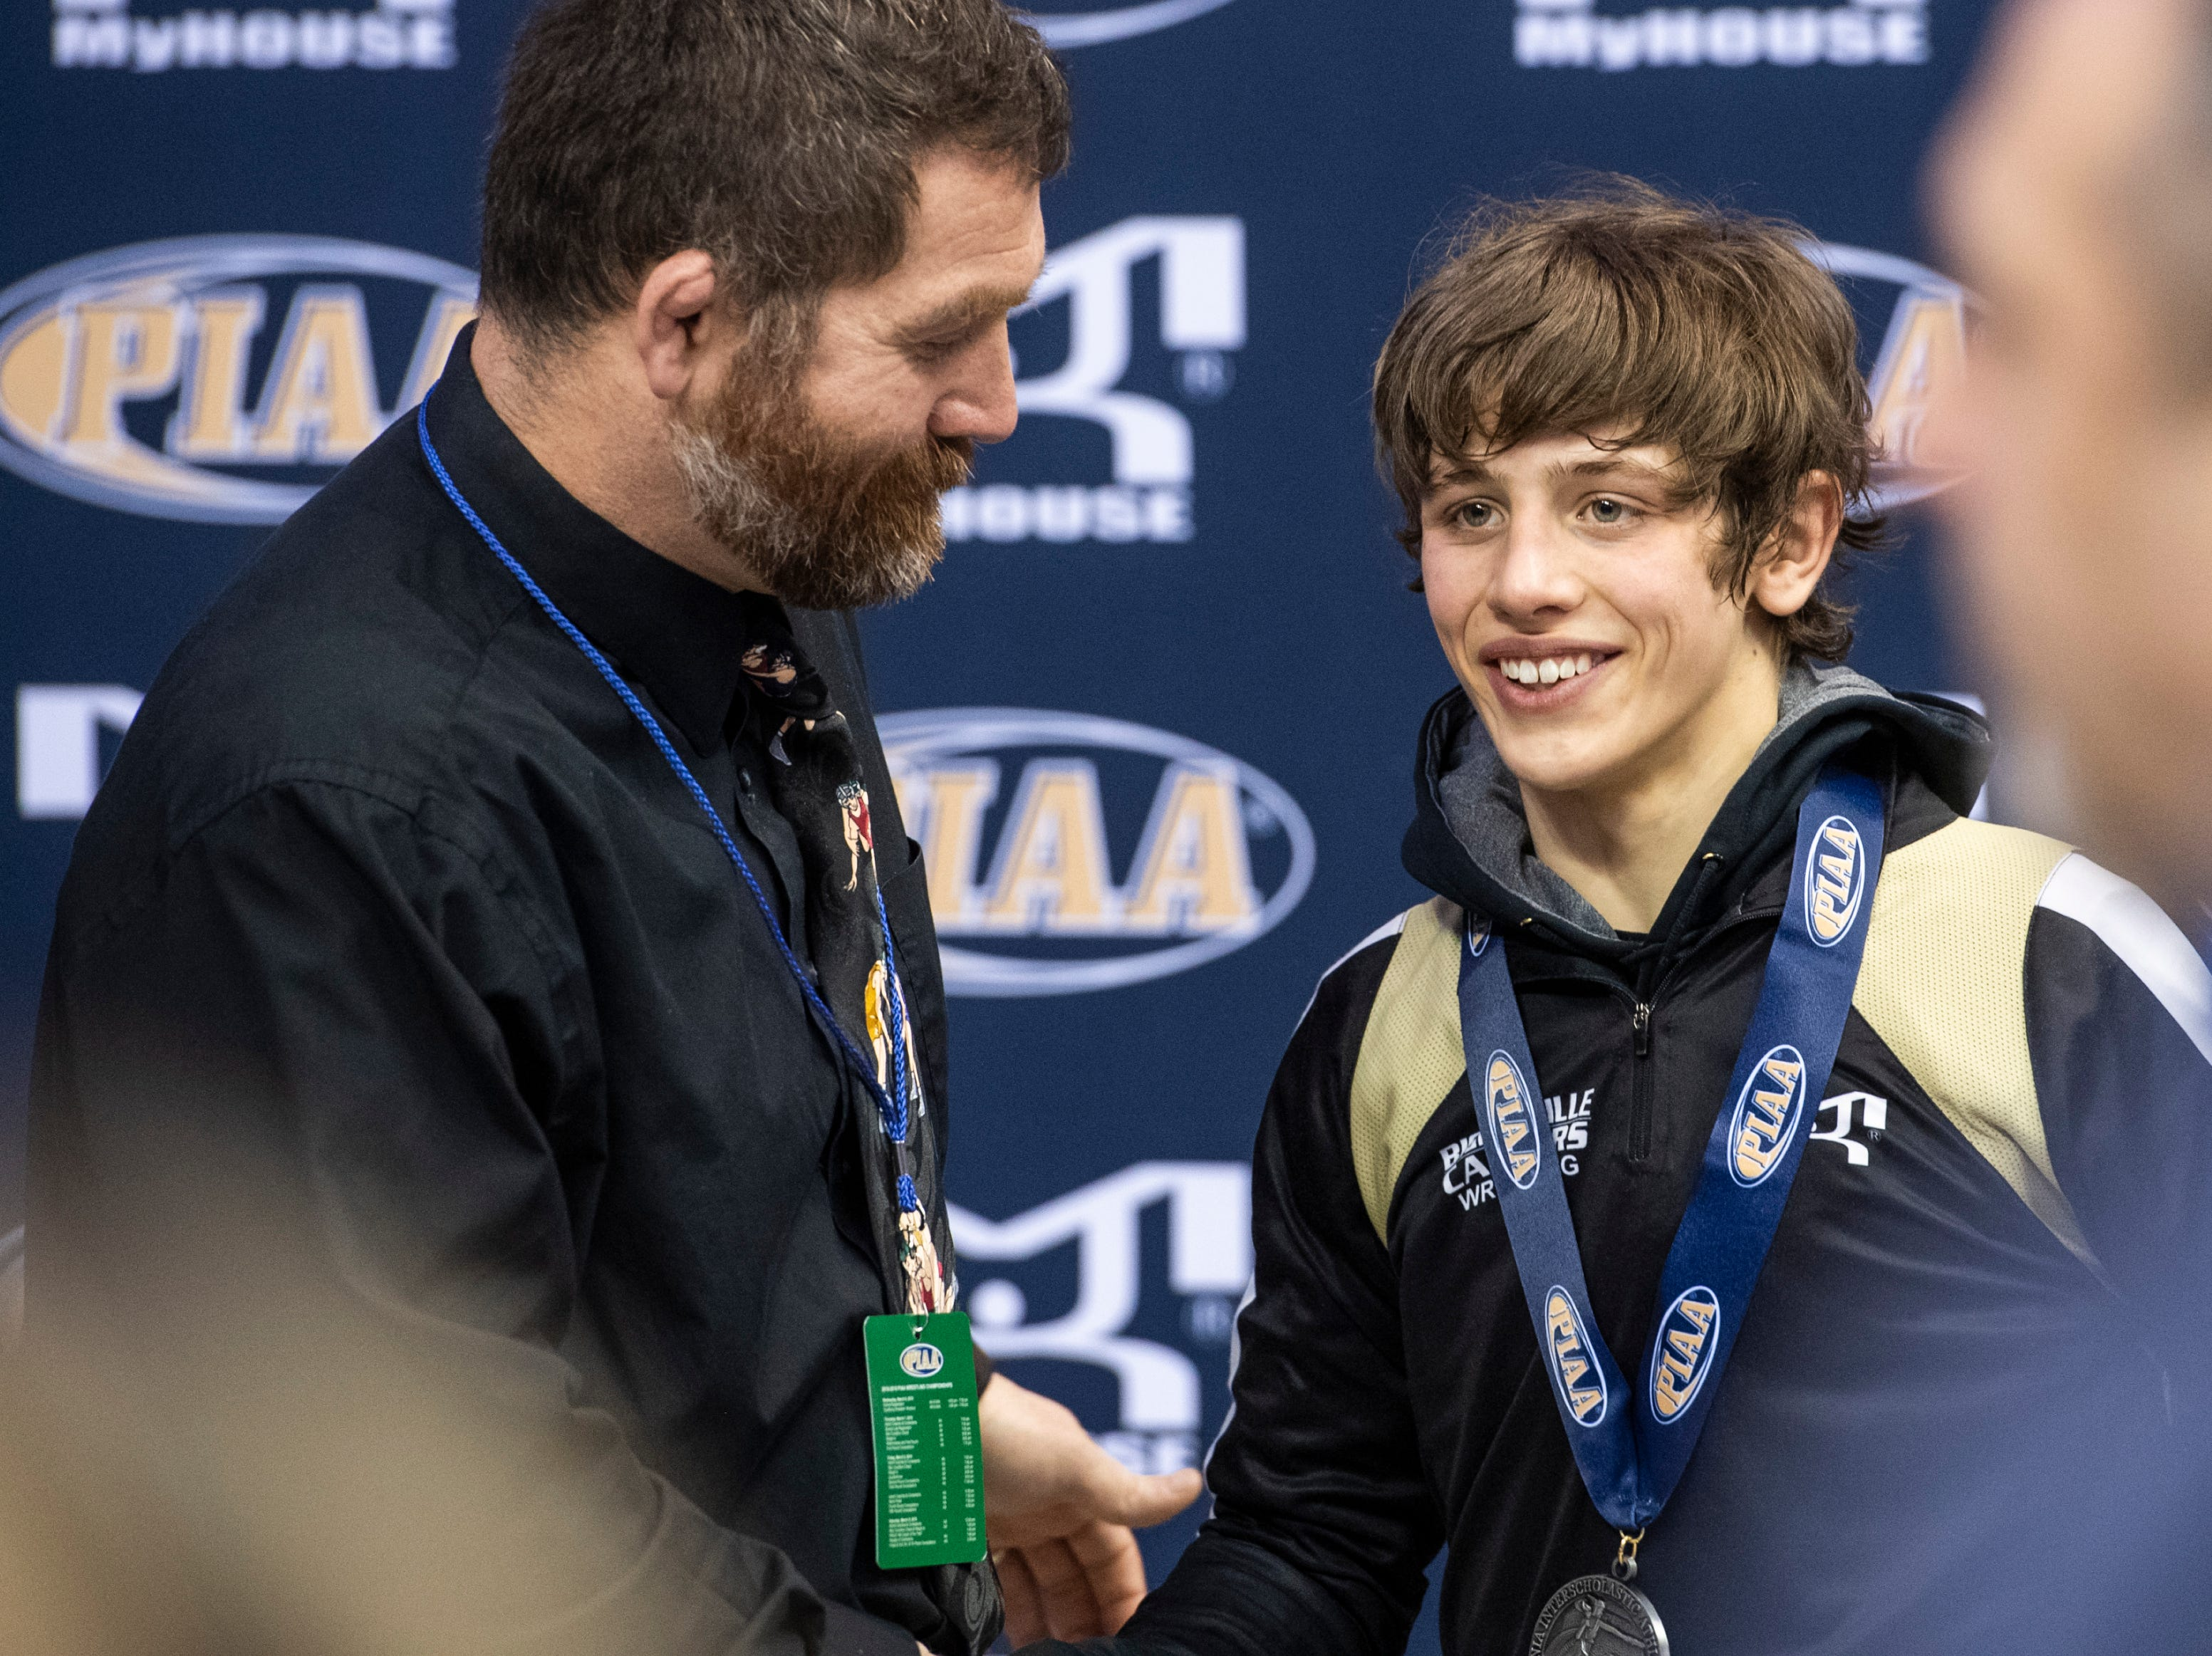 Biglerville's Levi Haines is awarded the silver medal by his dad and coach, Ken Haines, following the PIAA 2A 106-pound championship bout at the Giant Center in Hershey Saturday, March 9, 2019.